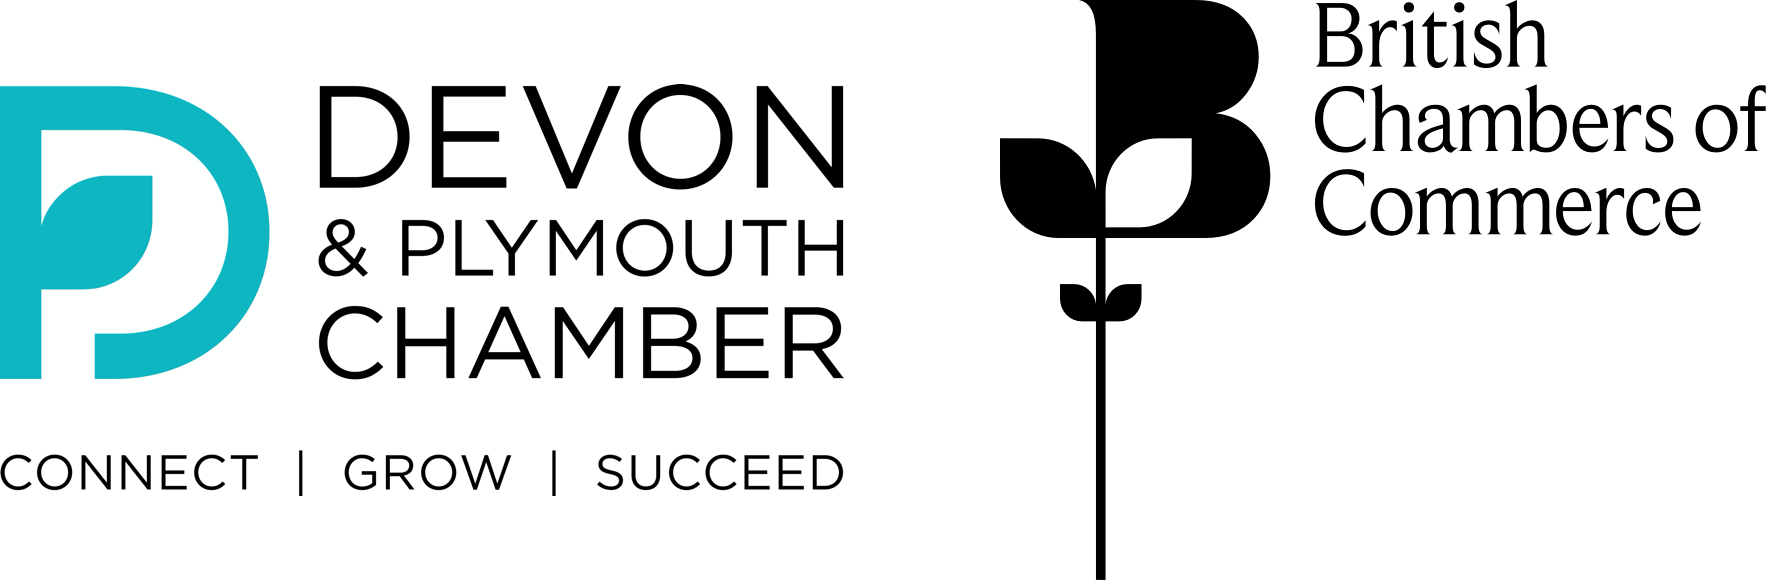 Devon & Plymouth Chamber of Commerce